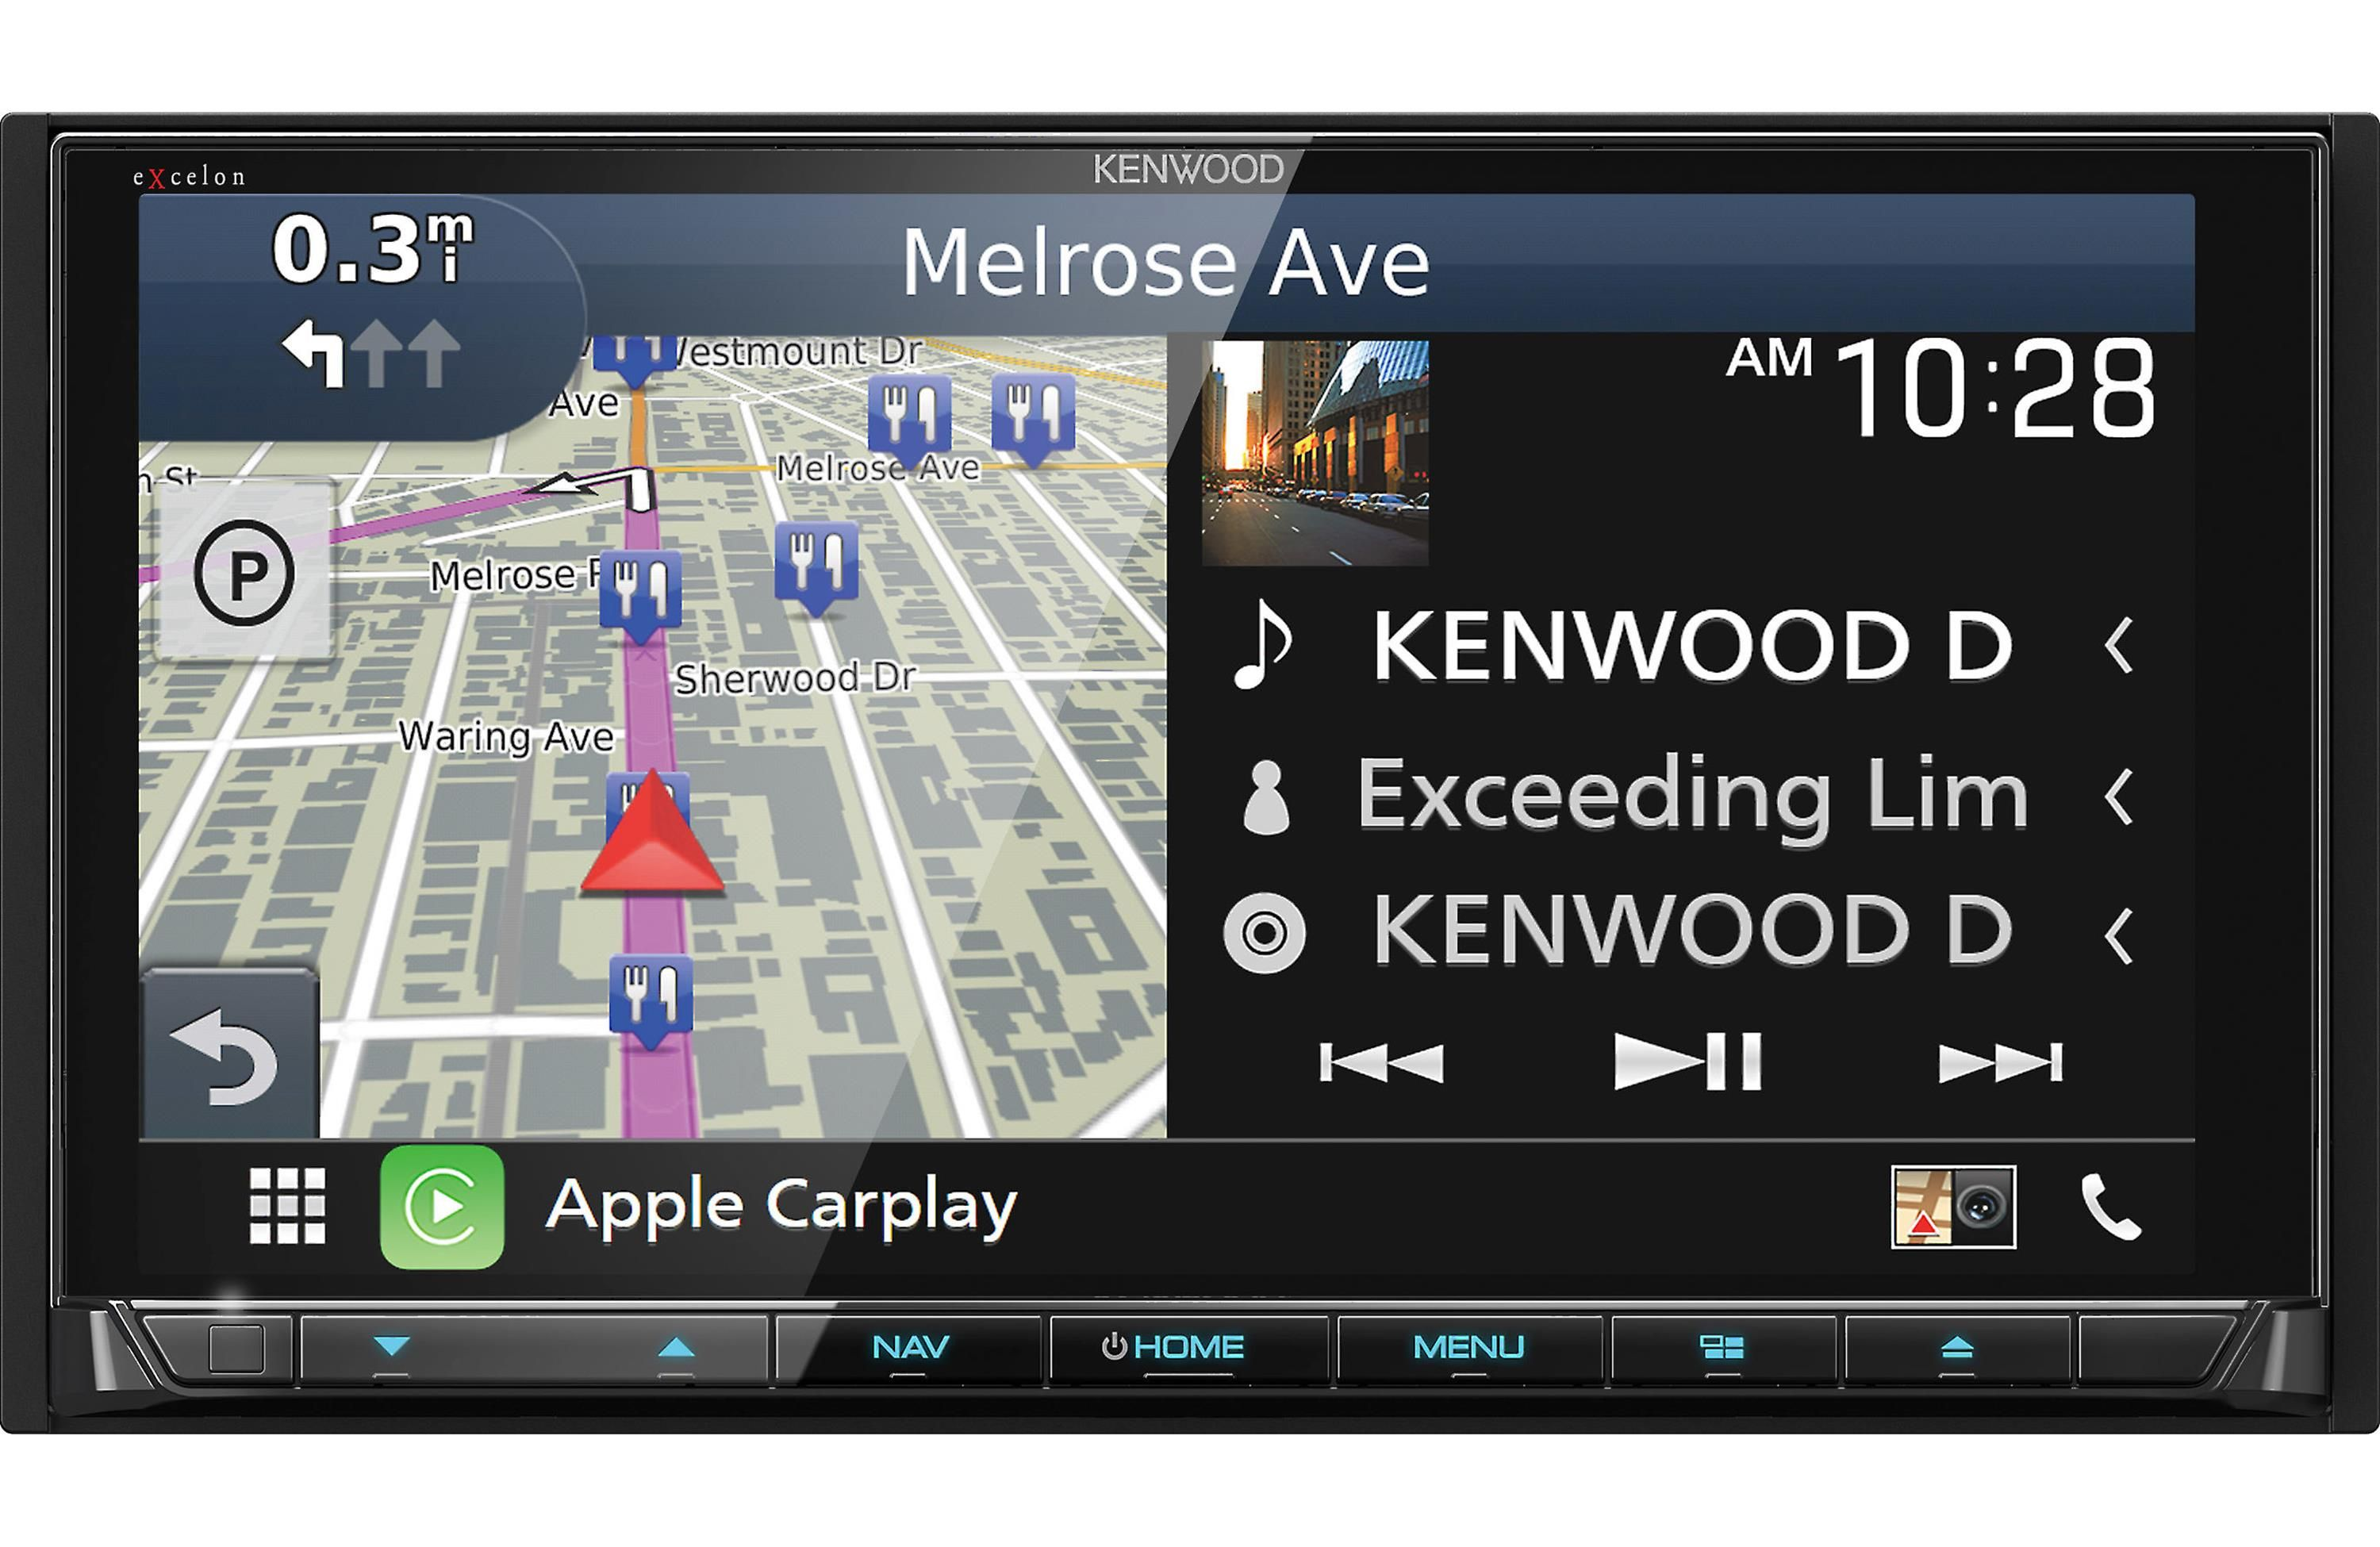 Kenwood's brand new eXcelon DNX995S navigation receiver is